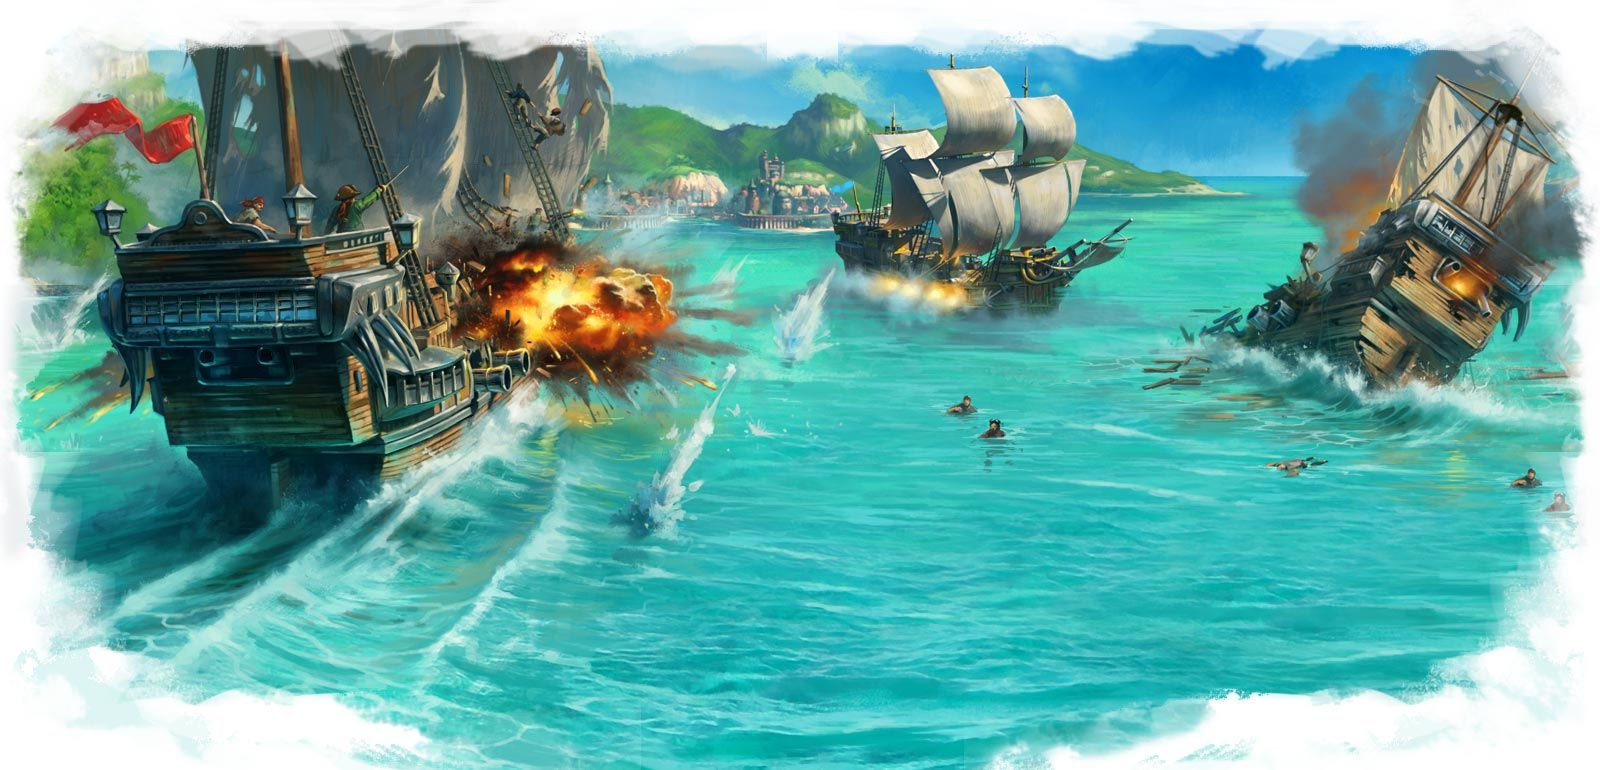 Pirate Storm - Online Pirate Game   PC Games I Am Watching or